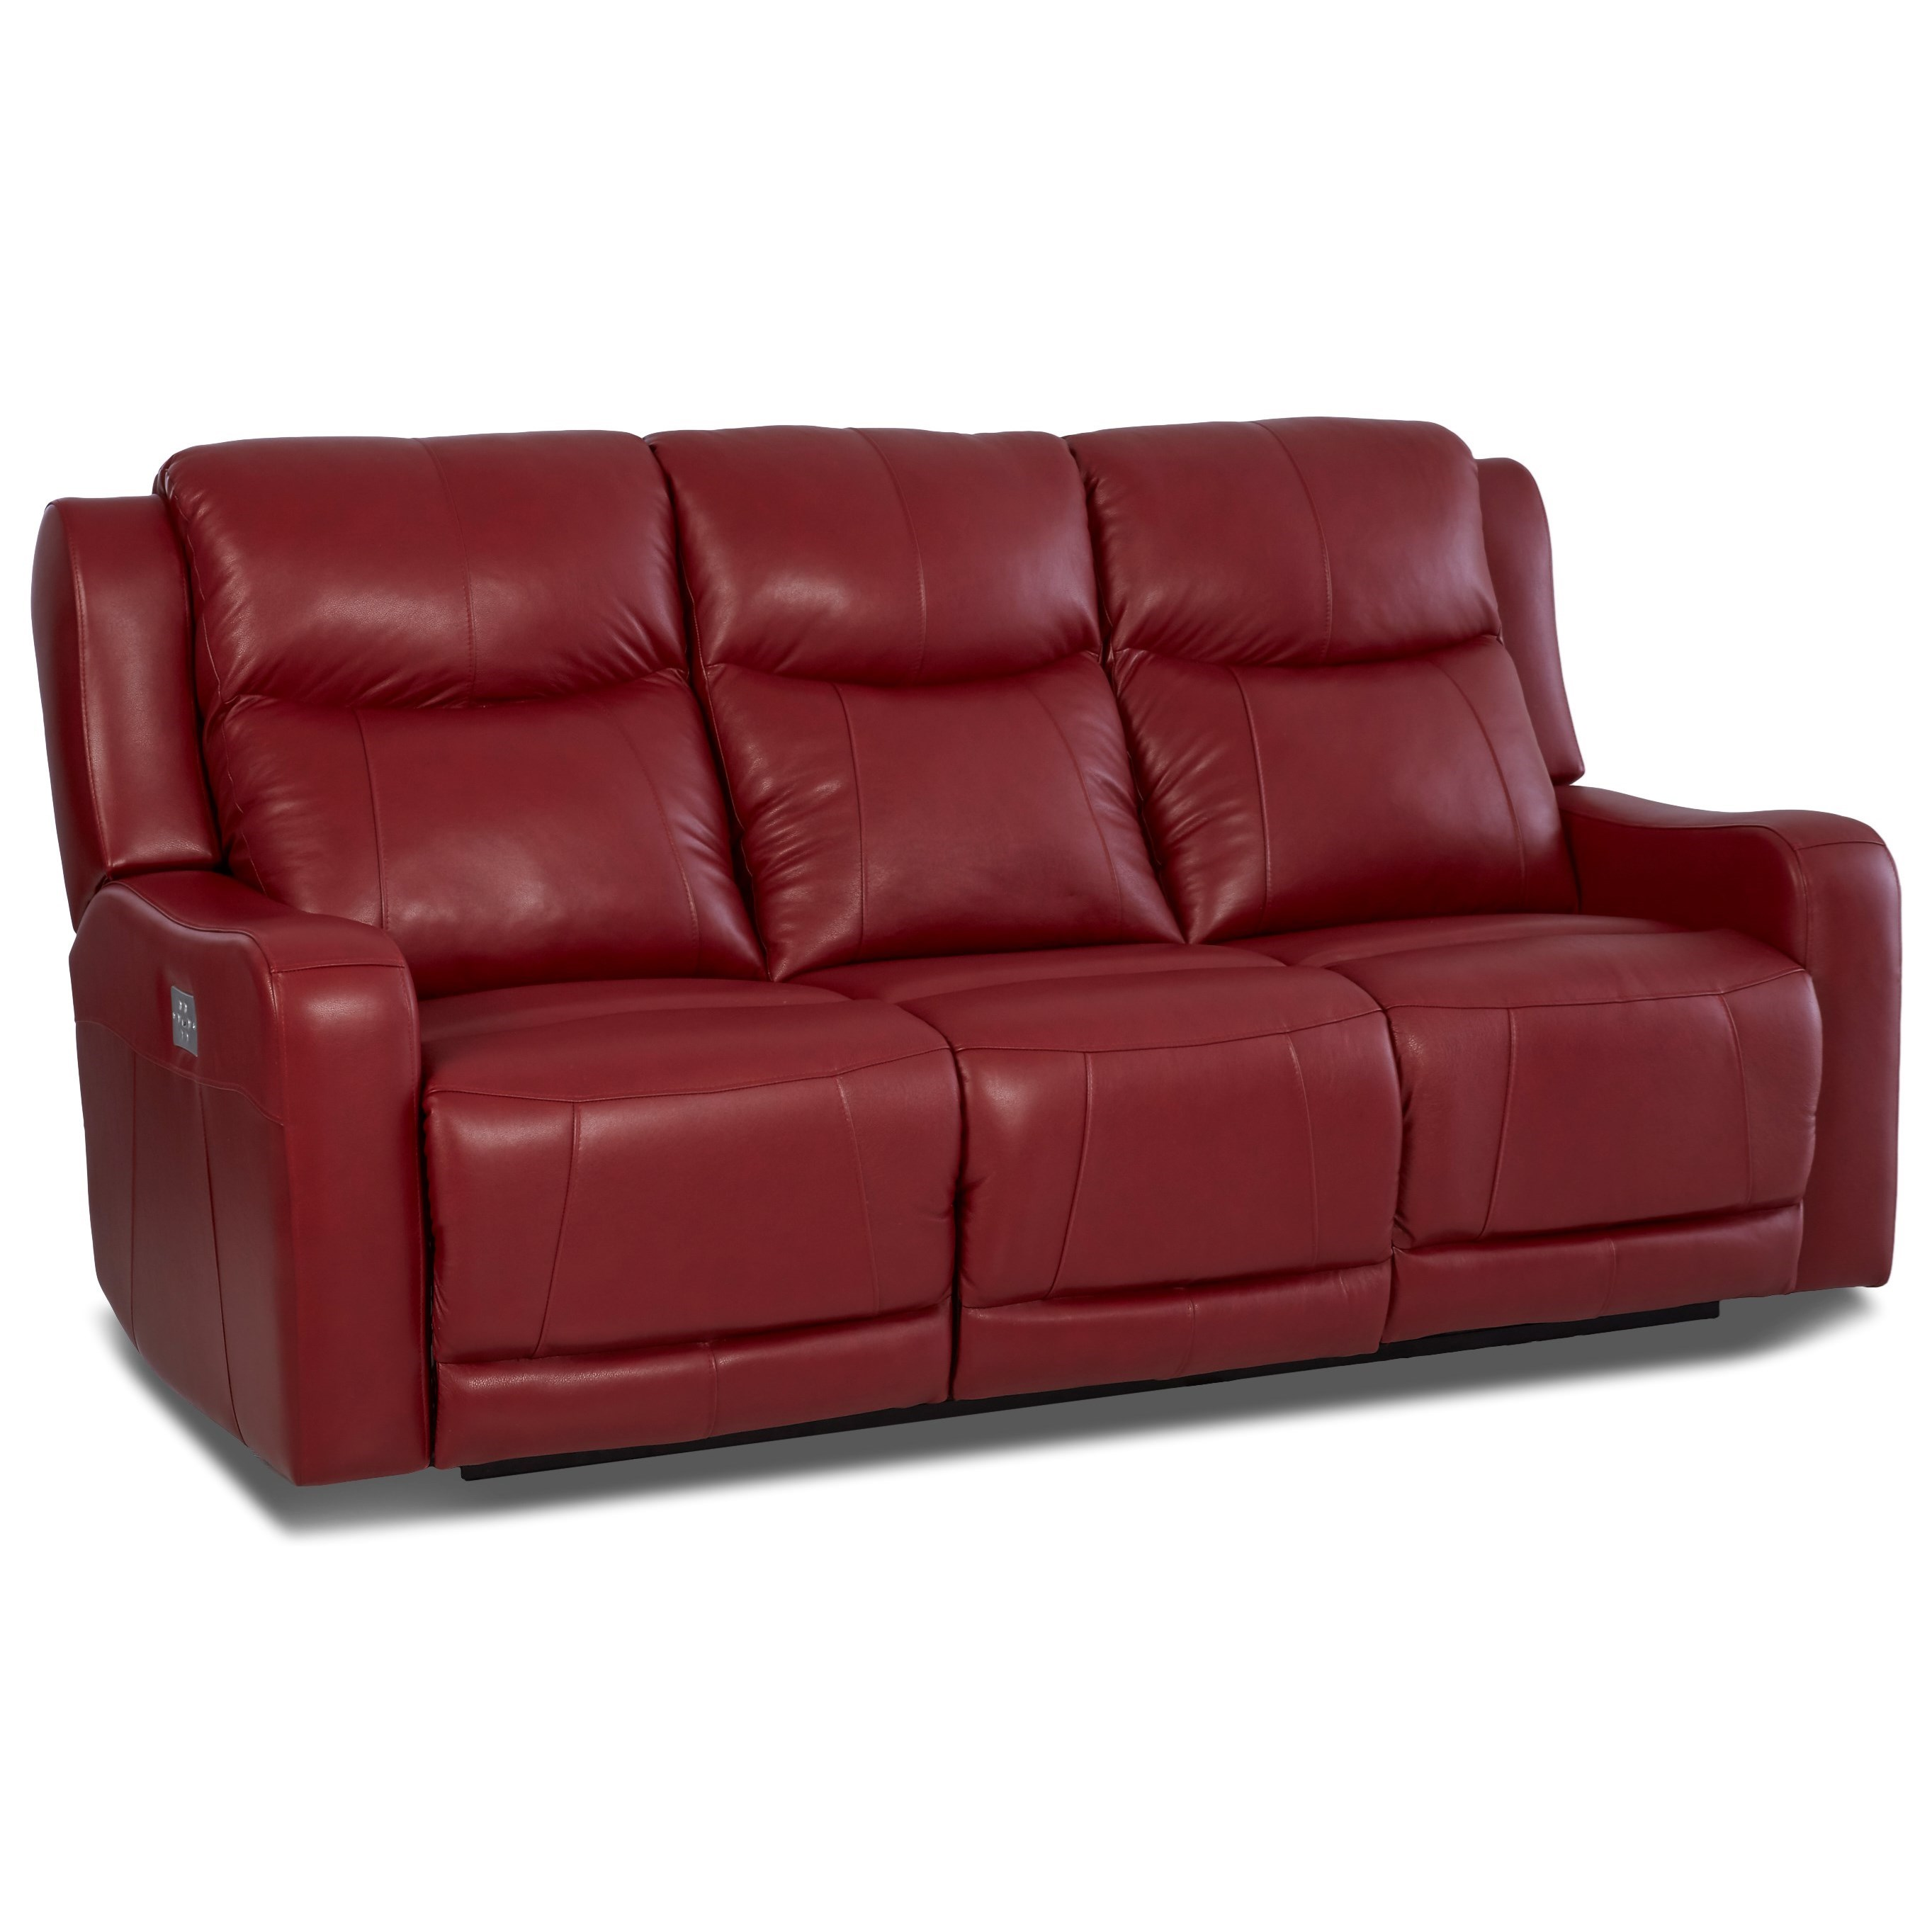 crescent power sofa recliner with headrest velvet fabric delhi klaussner barnett lv74803 6 pwrs reclining